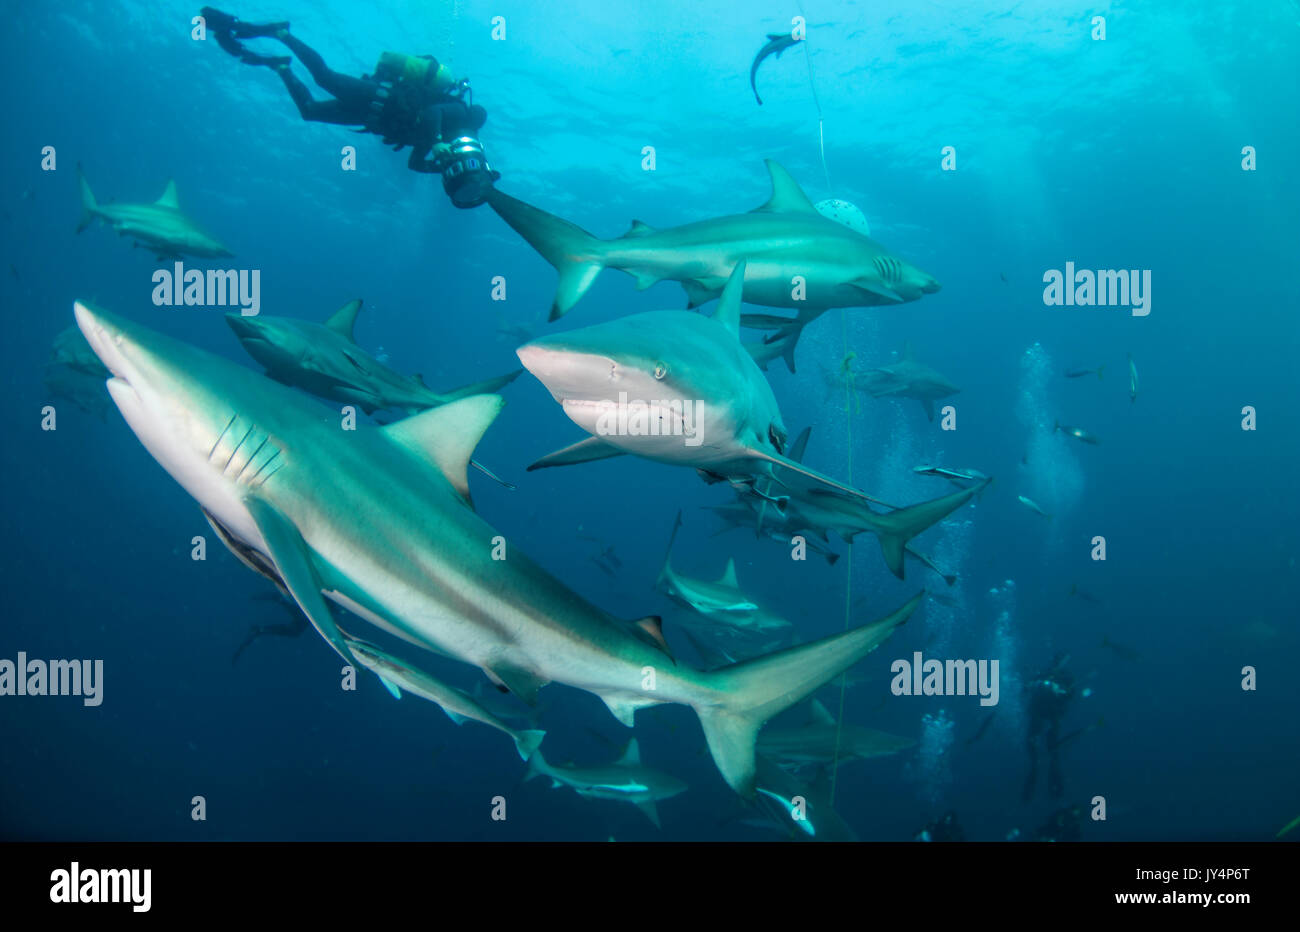 Underwater view of a large number of oceanic black tips sharks, Aliwal Shoal, South Africa. - Stock Image